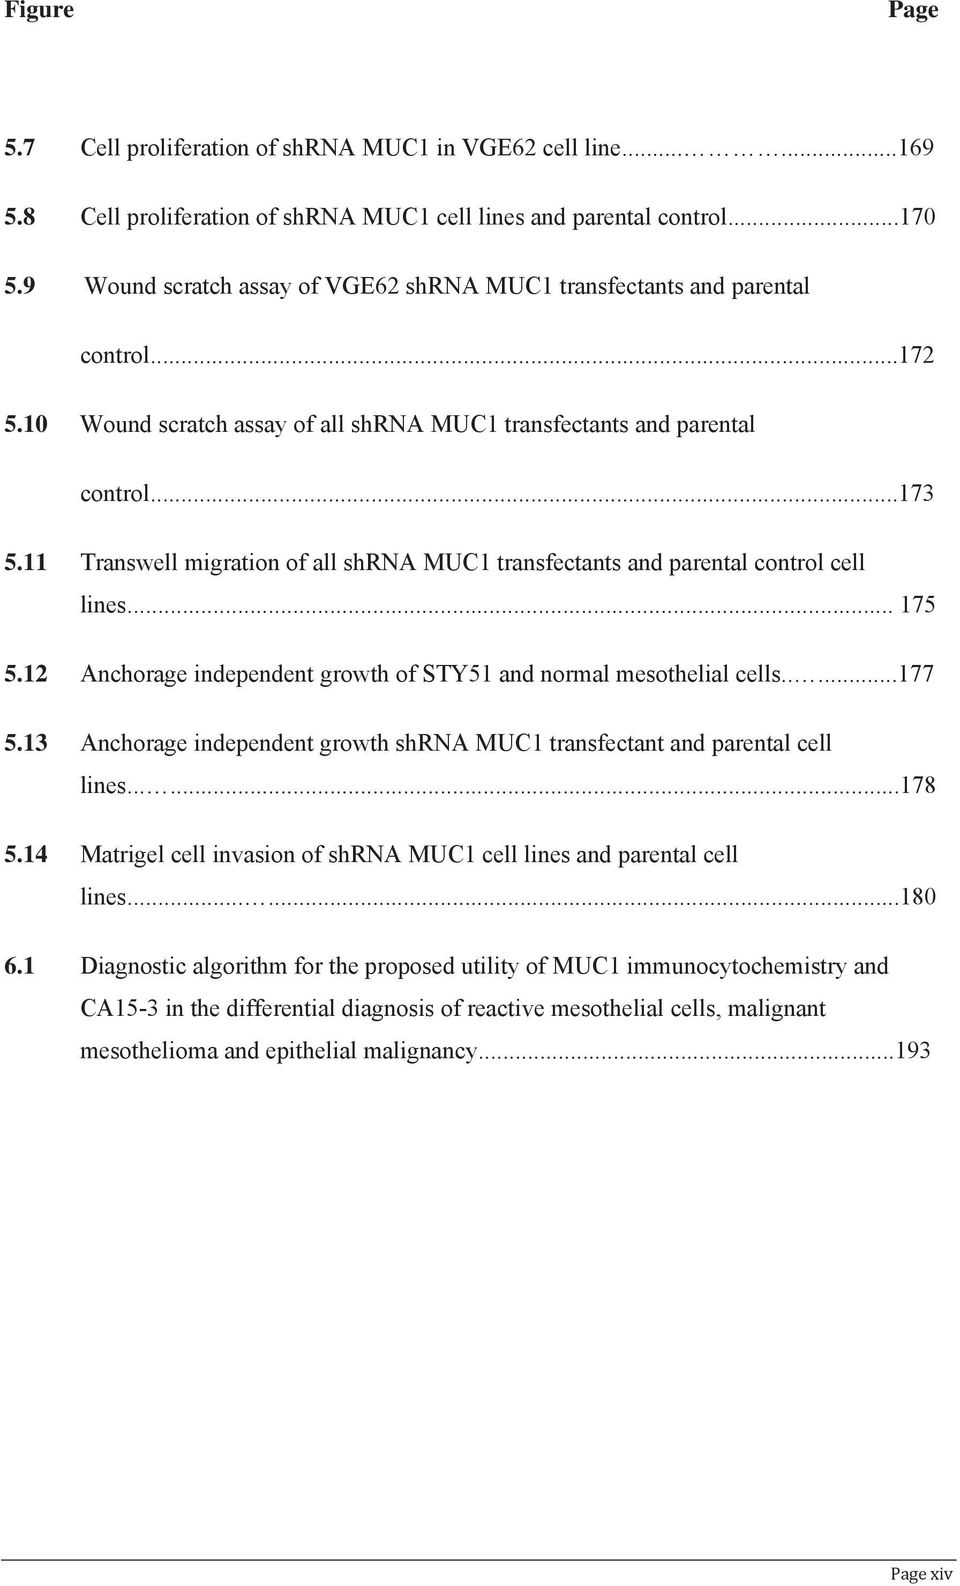 11 Transwell migration of all shrna MUC1 transfectants and parental control cell lines... 175 5.12 Anchorage independent growth of STY51 and normal mesothelial cells.....177 5.